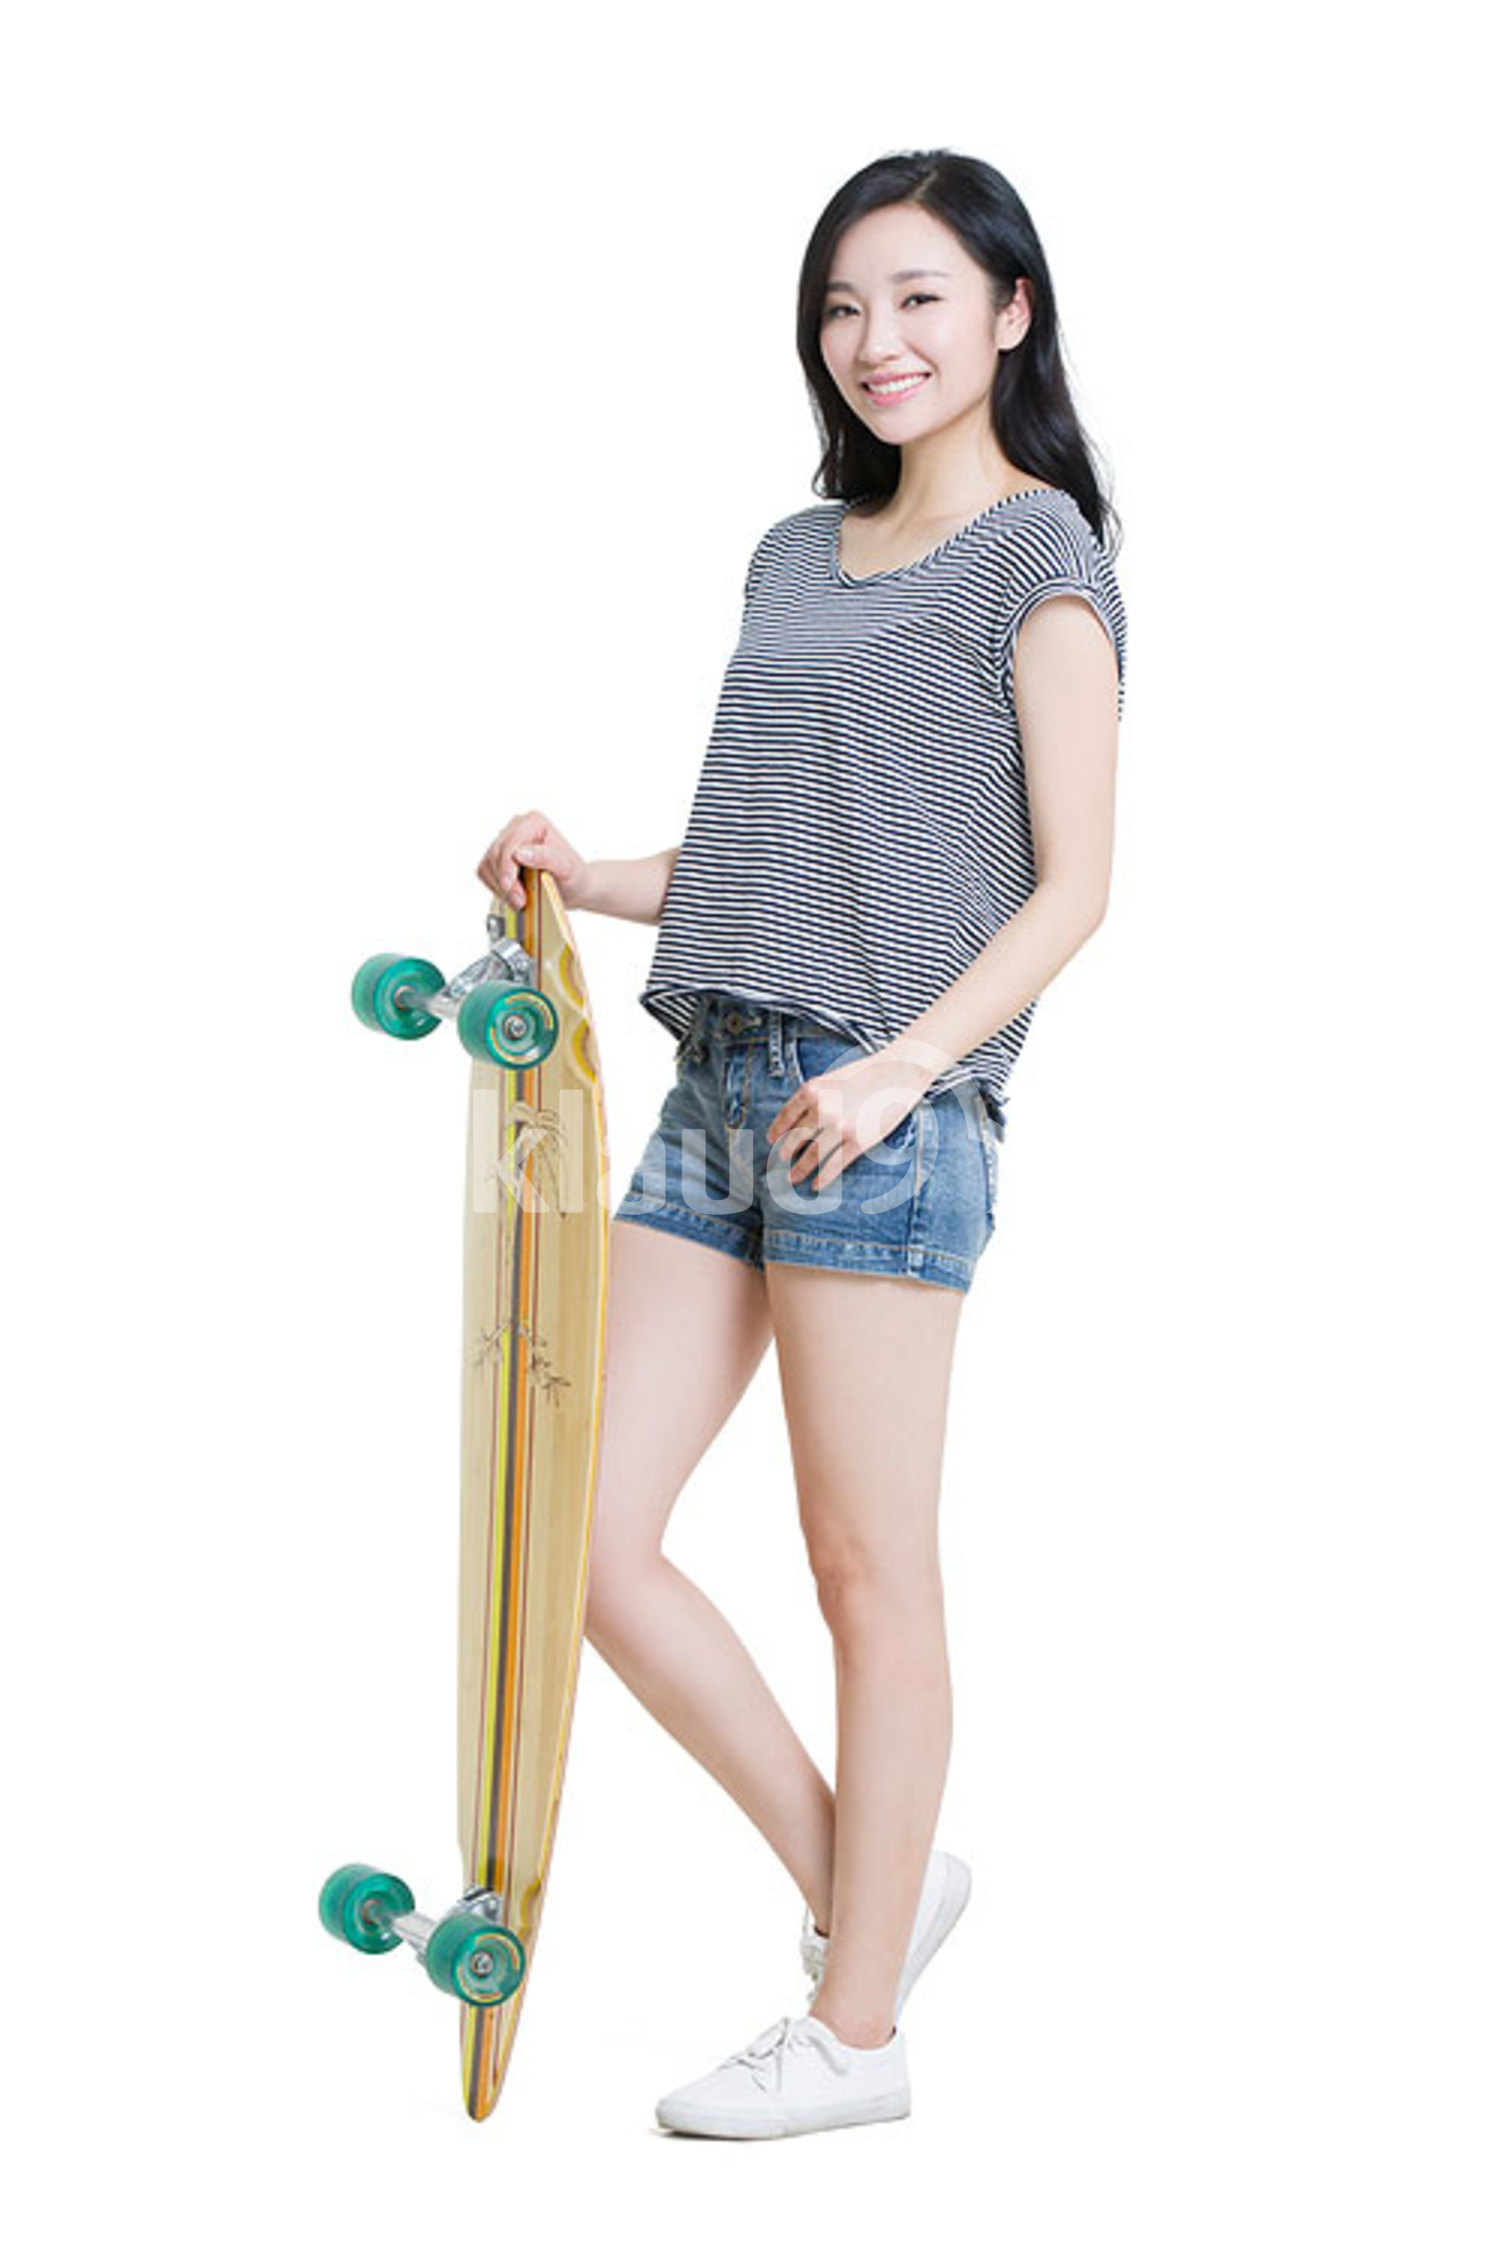 Happy young Chinese woman holding a skateboard